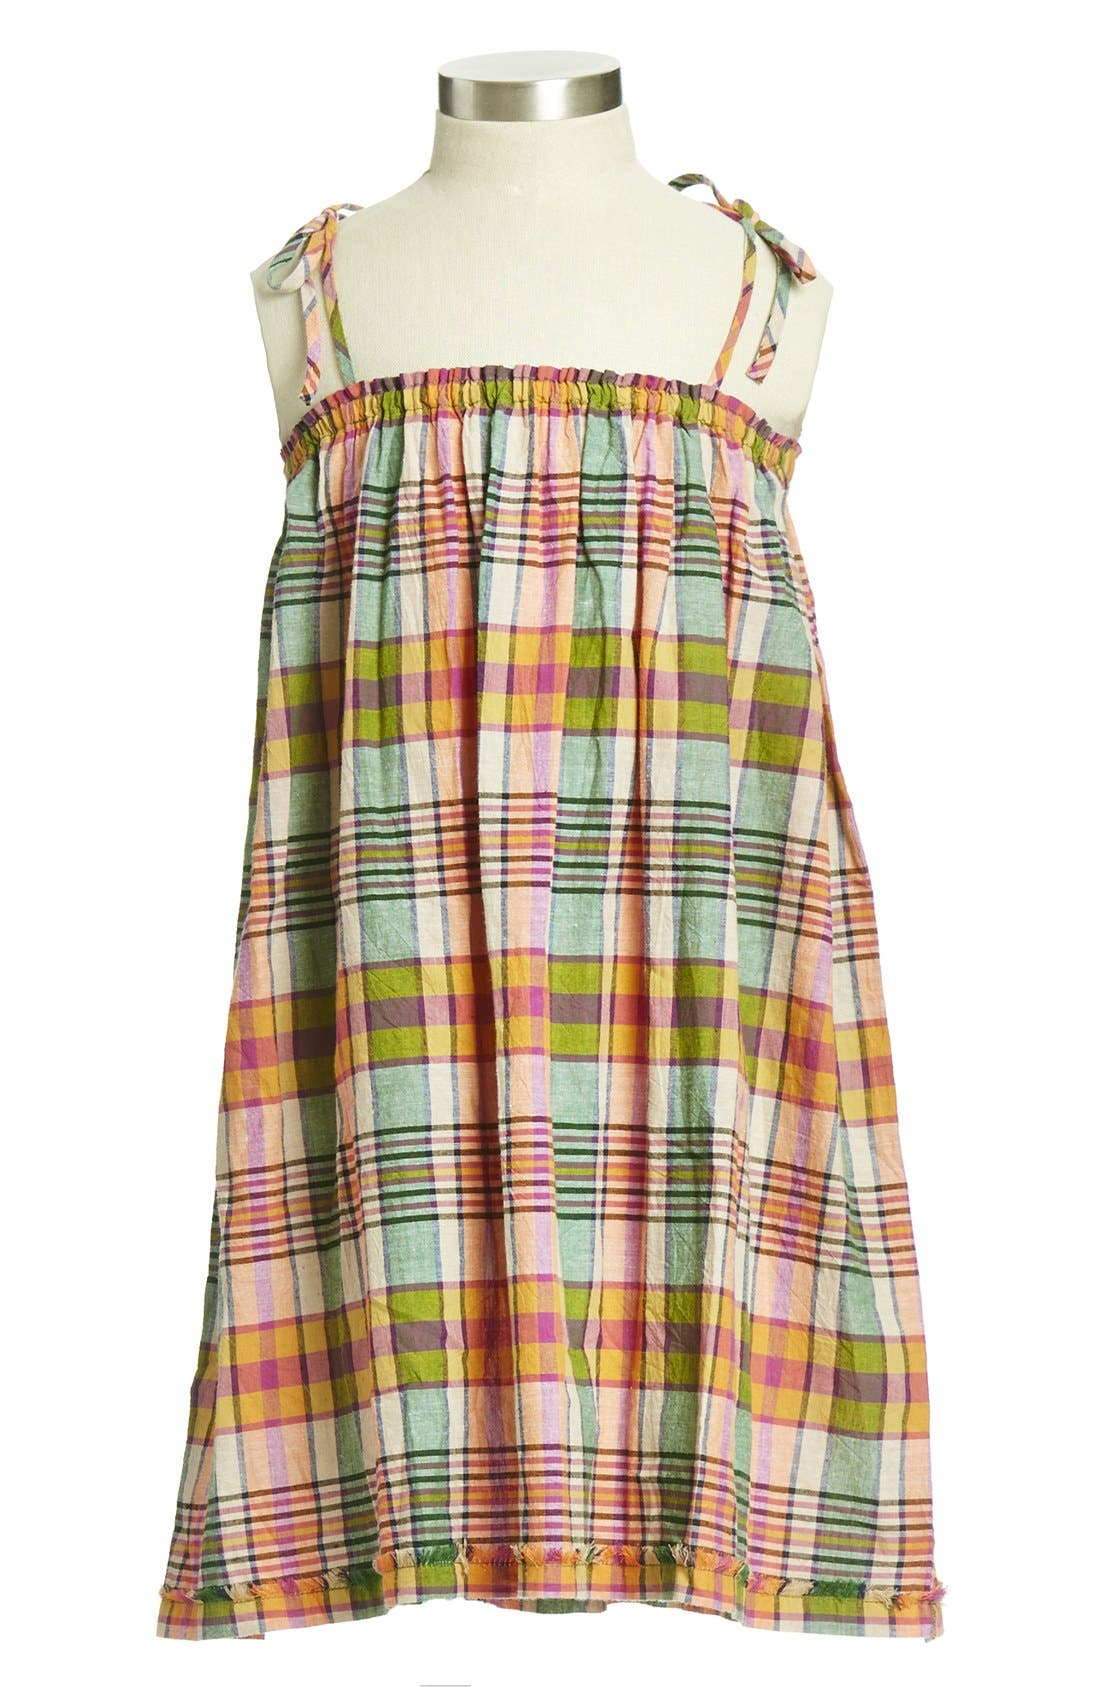 Main Image - Peek 'Collette' Plaid Cotton Dress (Toddler Girls, Little Girls & Big Girls)